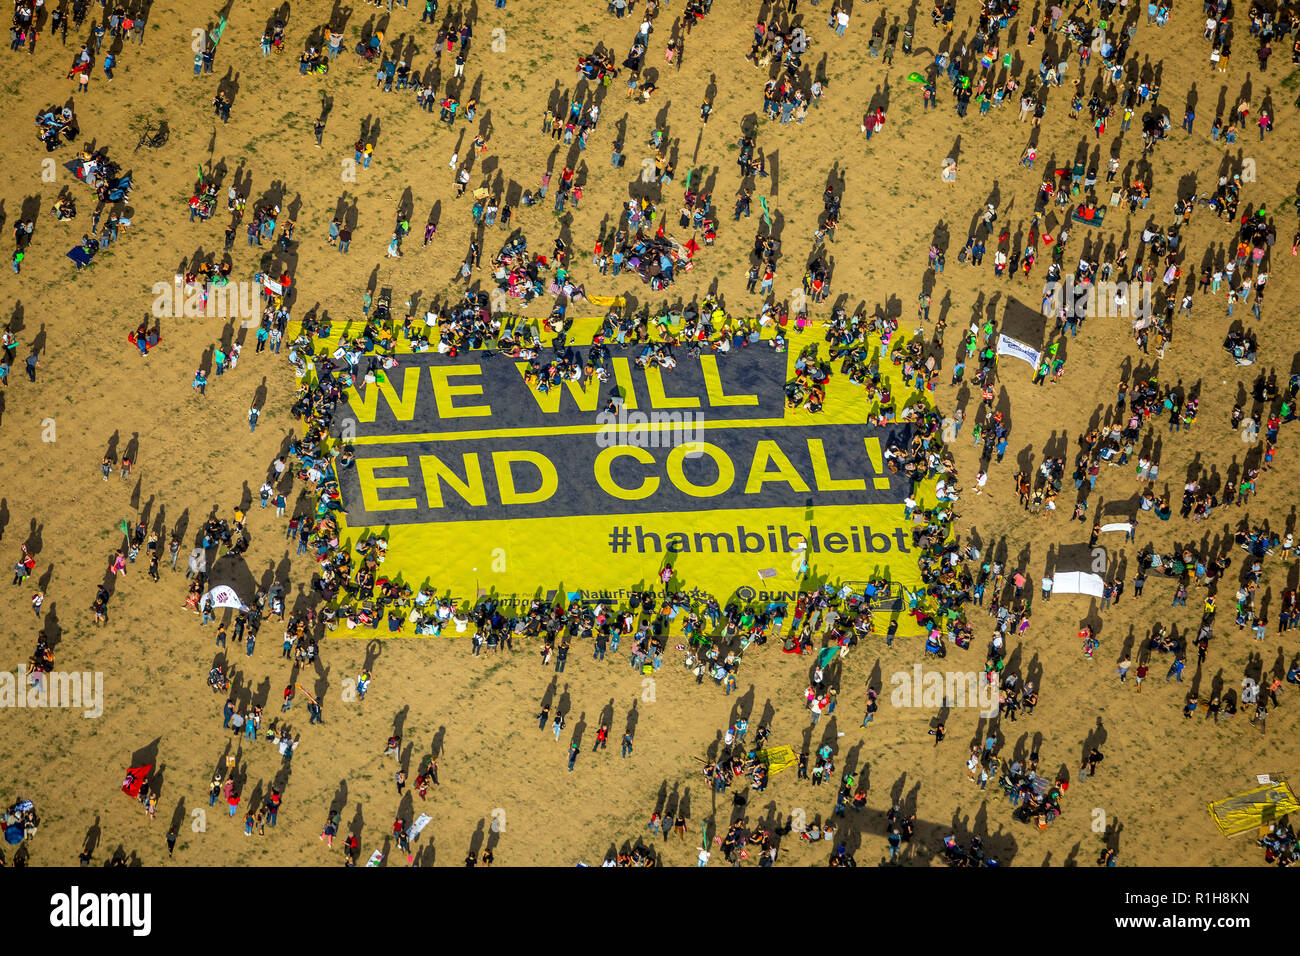 Many people on large-scale demonstration with Banner We will end coal, against the clearing of the Hambach forest, lignite area - Stock Image